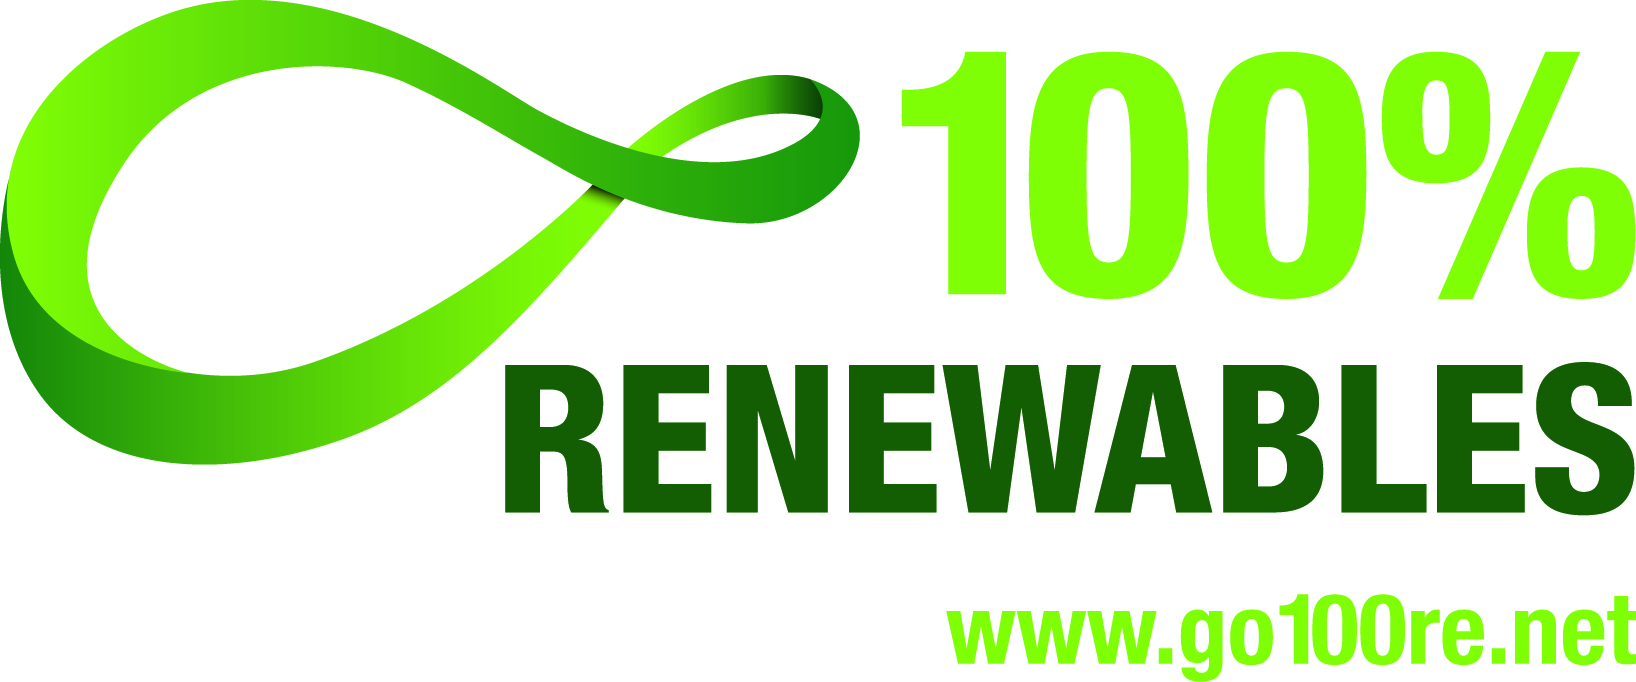 The Global 100% Renewable Energy Campaign